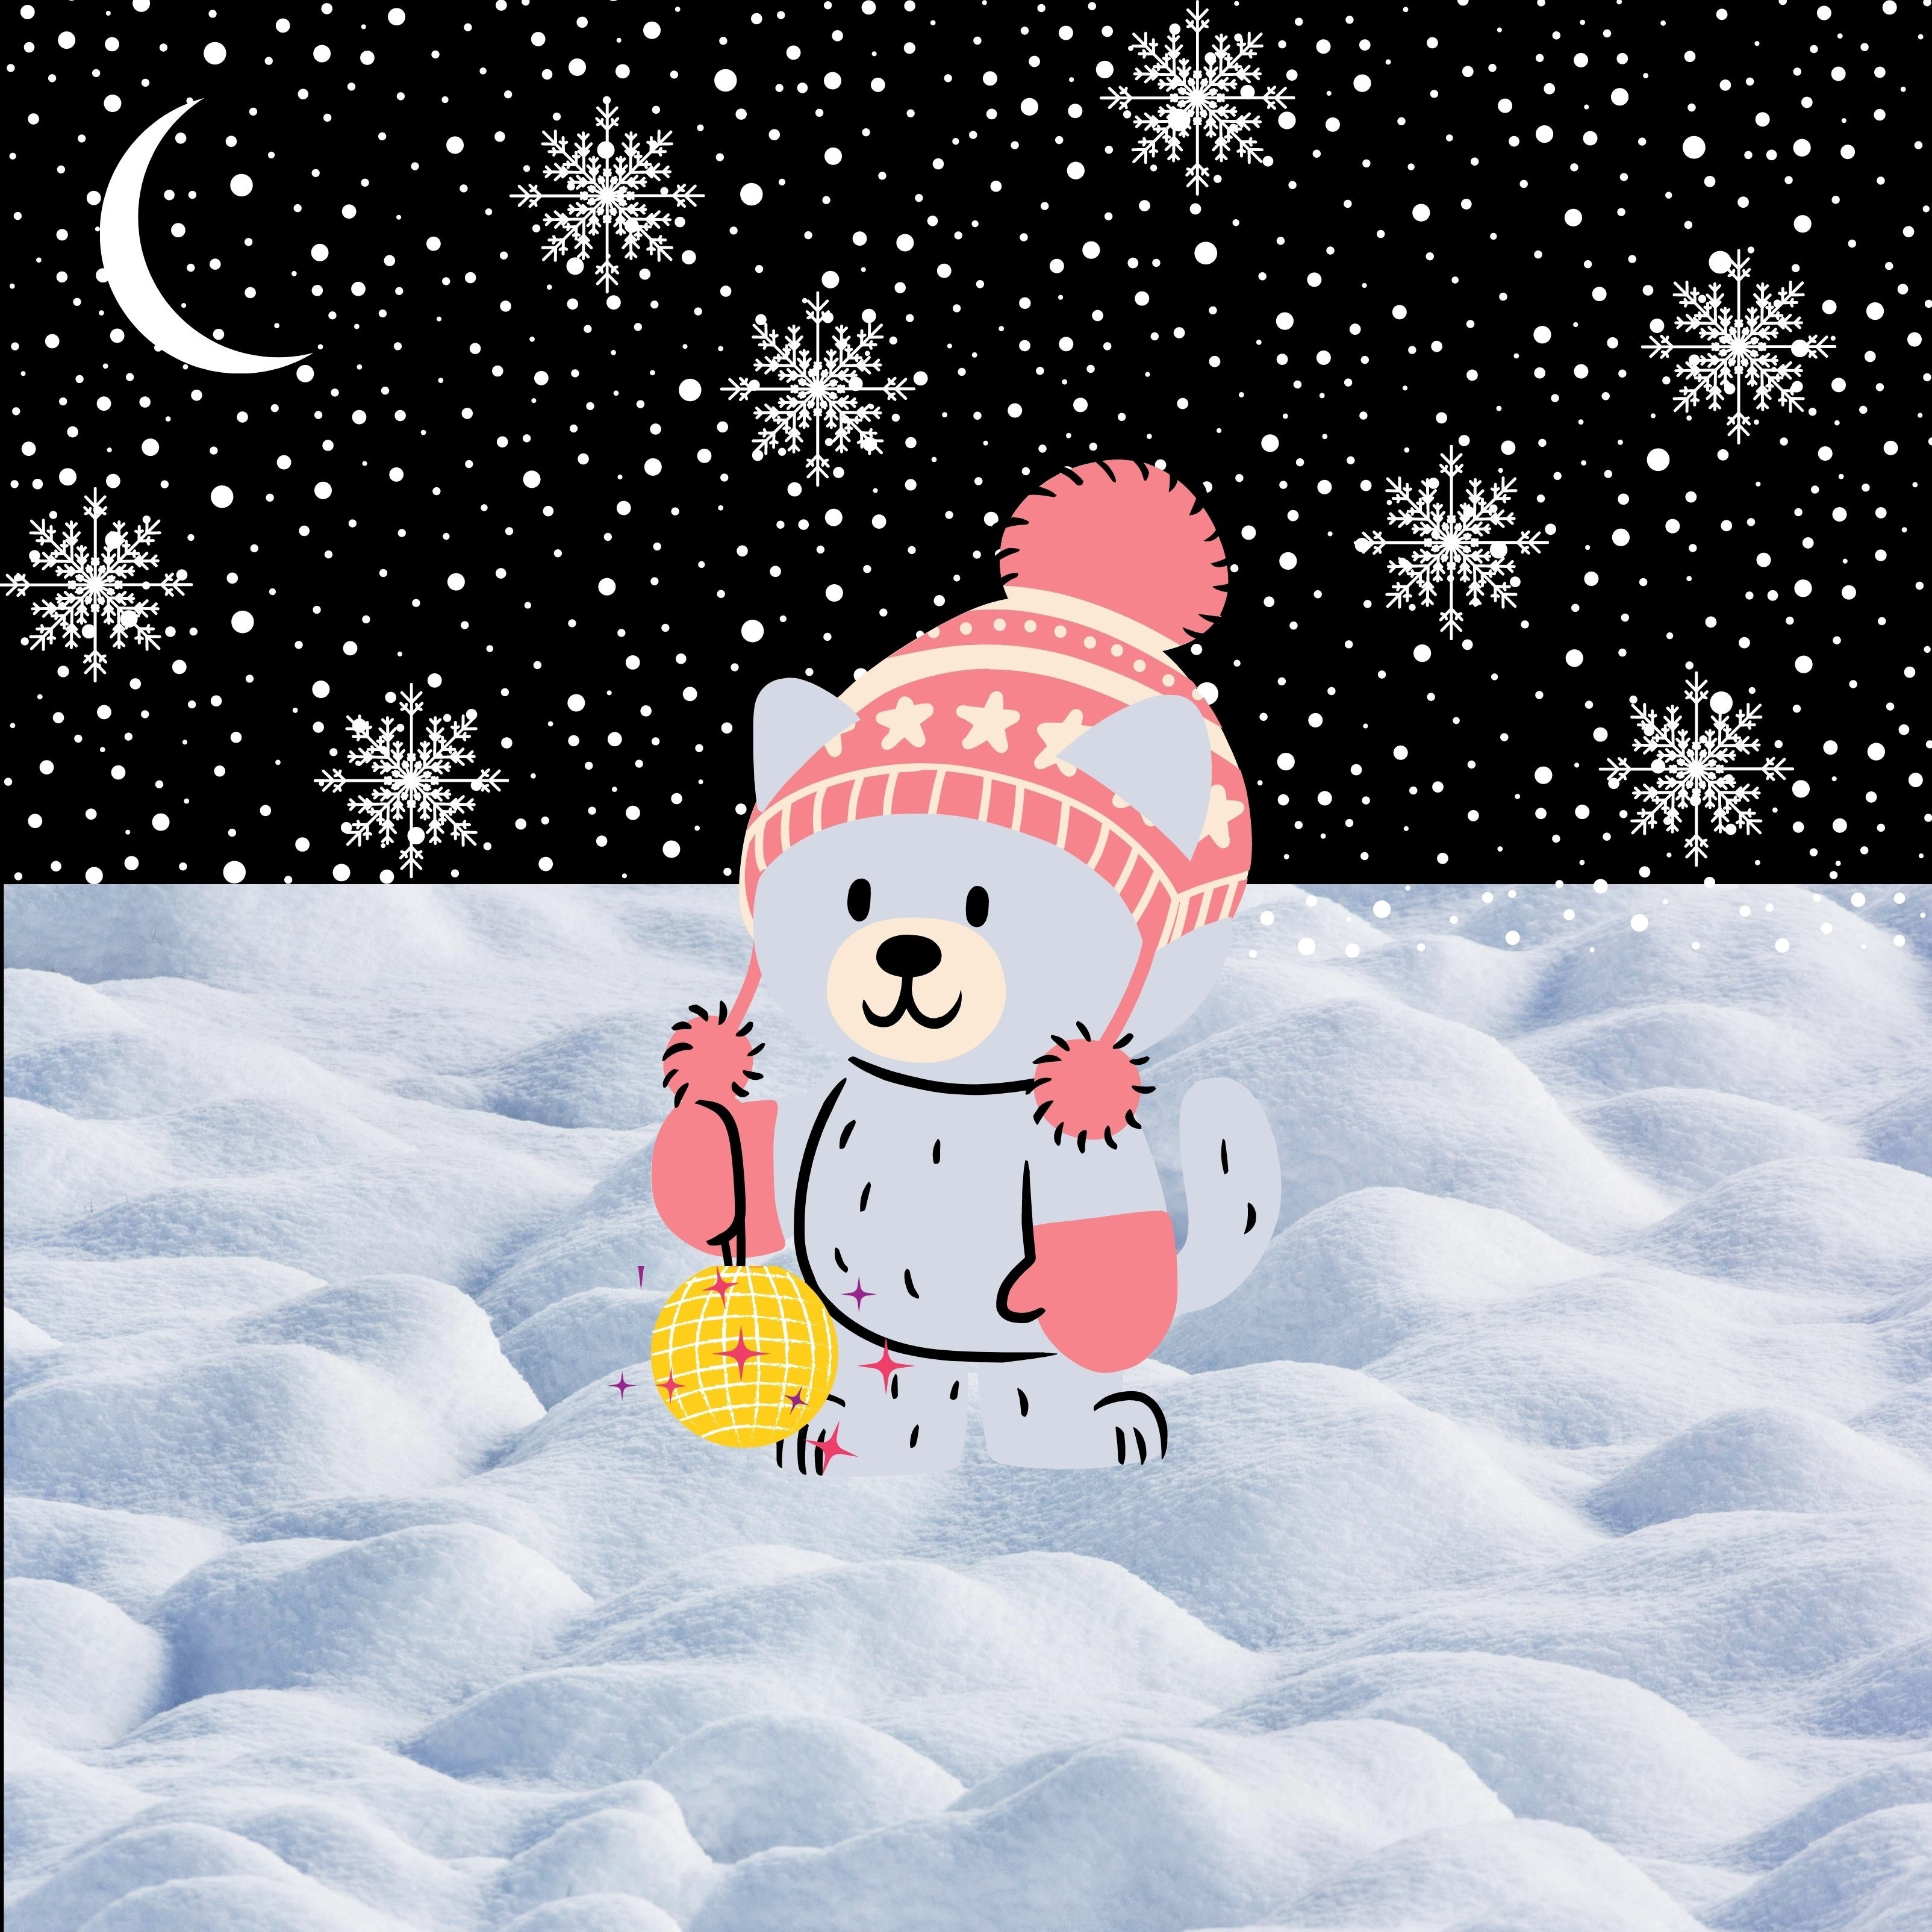 Winter Cat Gloves Cute Snowing iPad Wallpaper